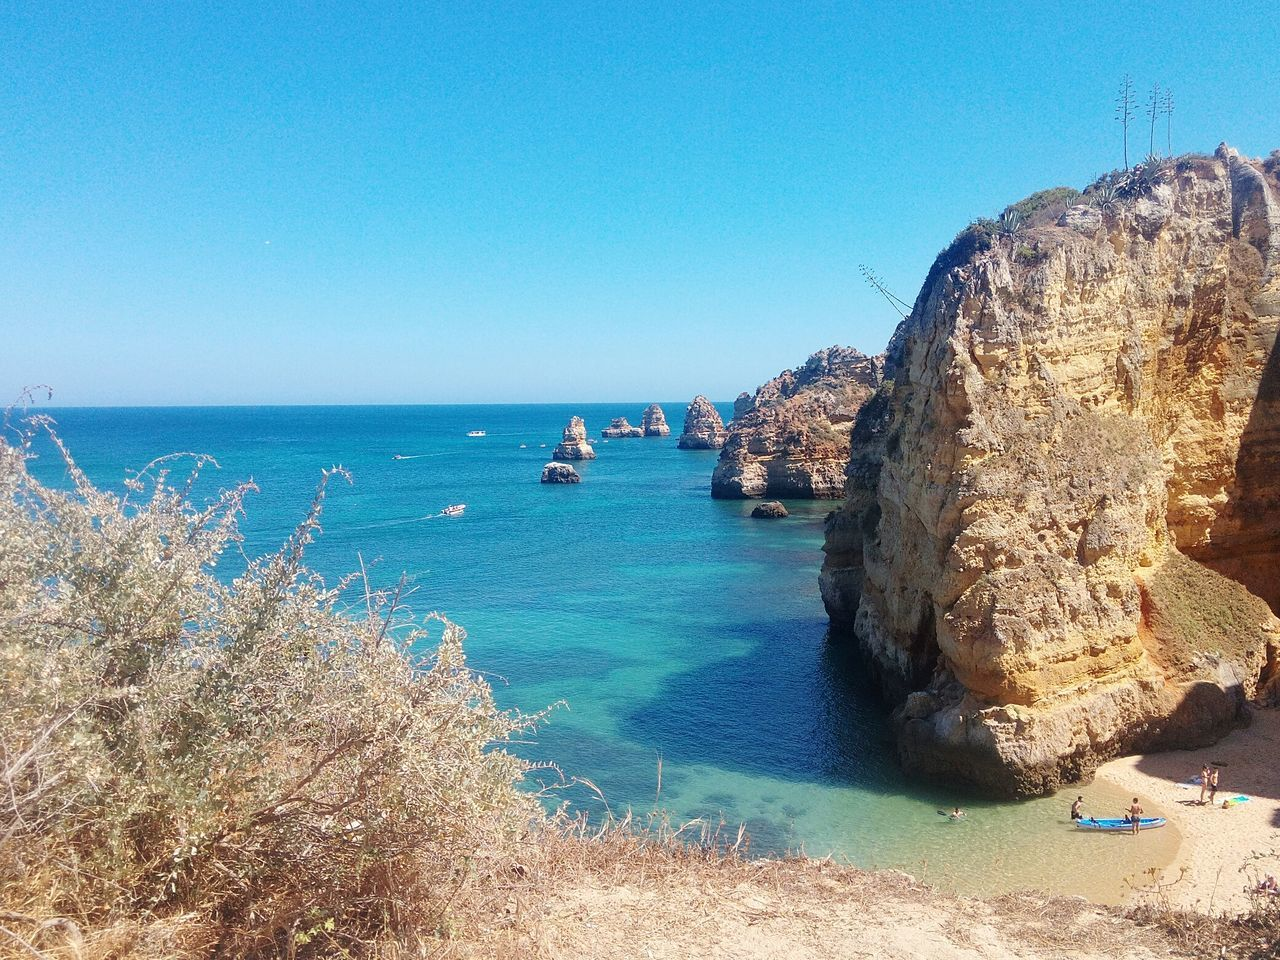 Summer *-* Sea Sky Rock Rocks Water Life Beach Boat Boats⛵️ Ocean View Holiday Portugal Portugaldenorteasul Paradise Day Relax Summer Eyemnaturelover Showcase: February Algarve Taking Photos Pure Enjoyingtheview Firsteyeemphoto